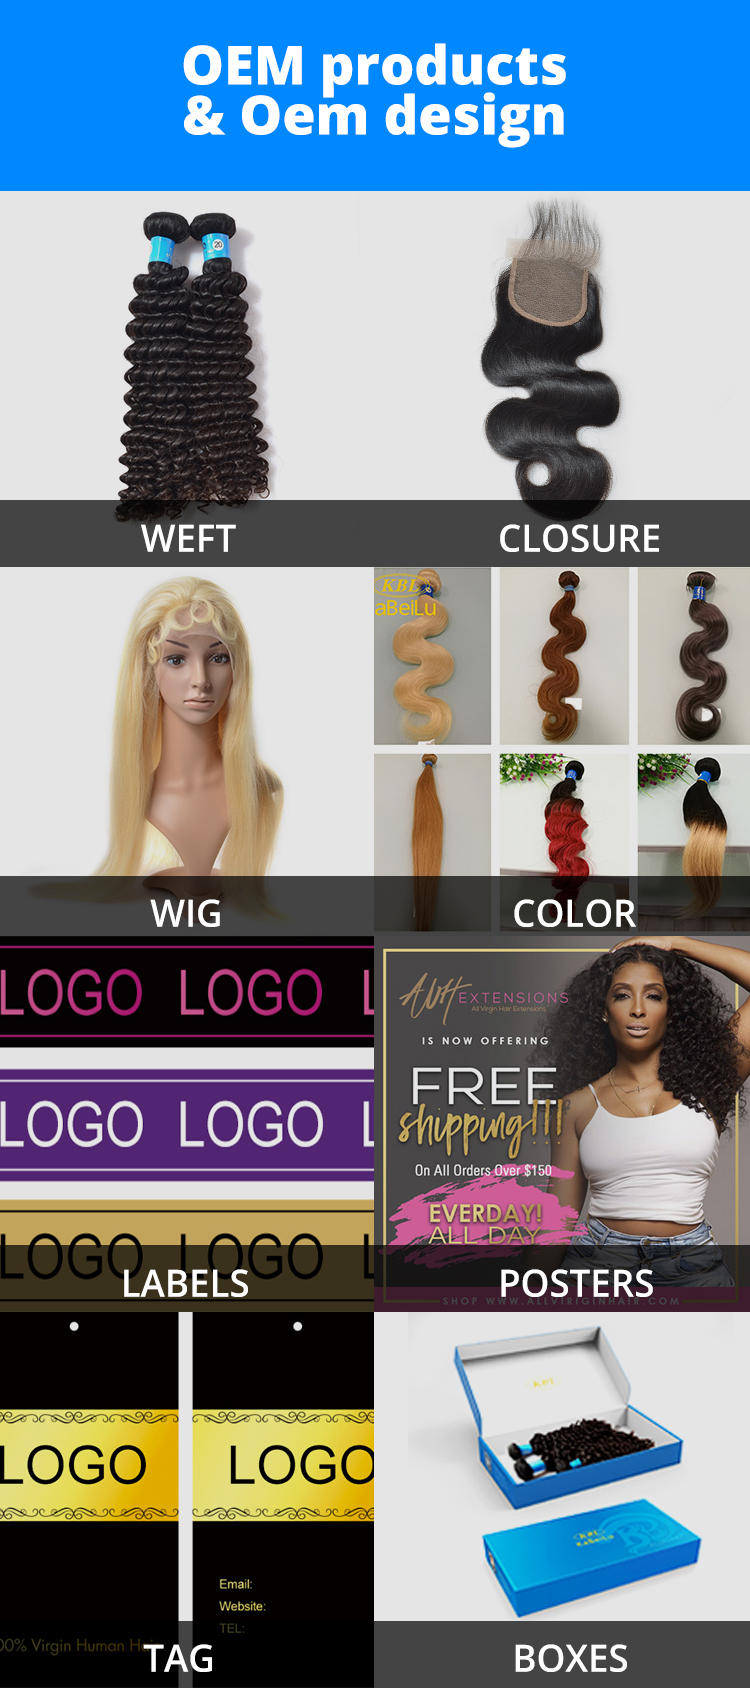 7a 10a grade brazilian virgin hair 3 bundles,water wave brazilian hair names of human hair,how to start selling brazilian hair